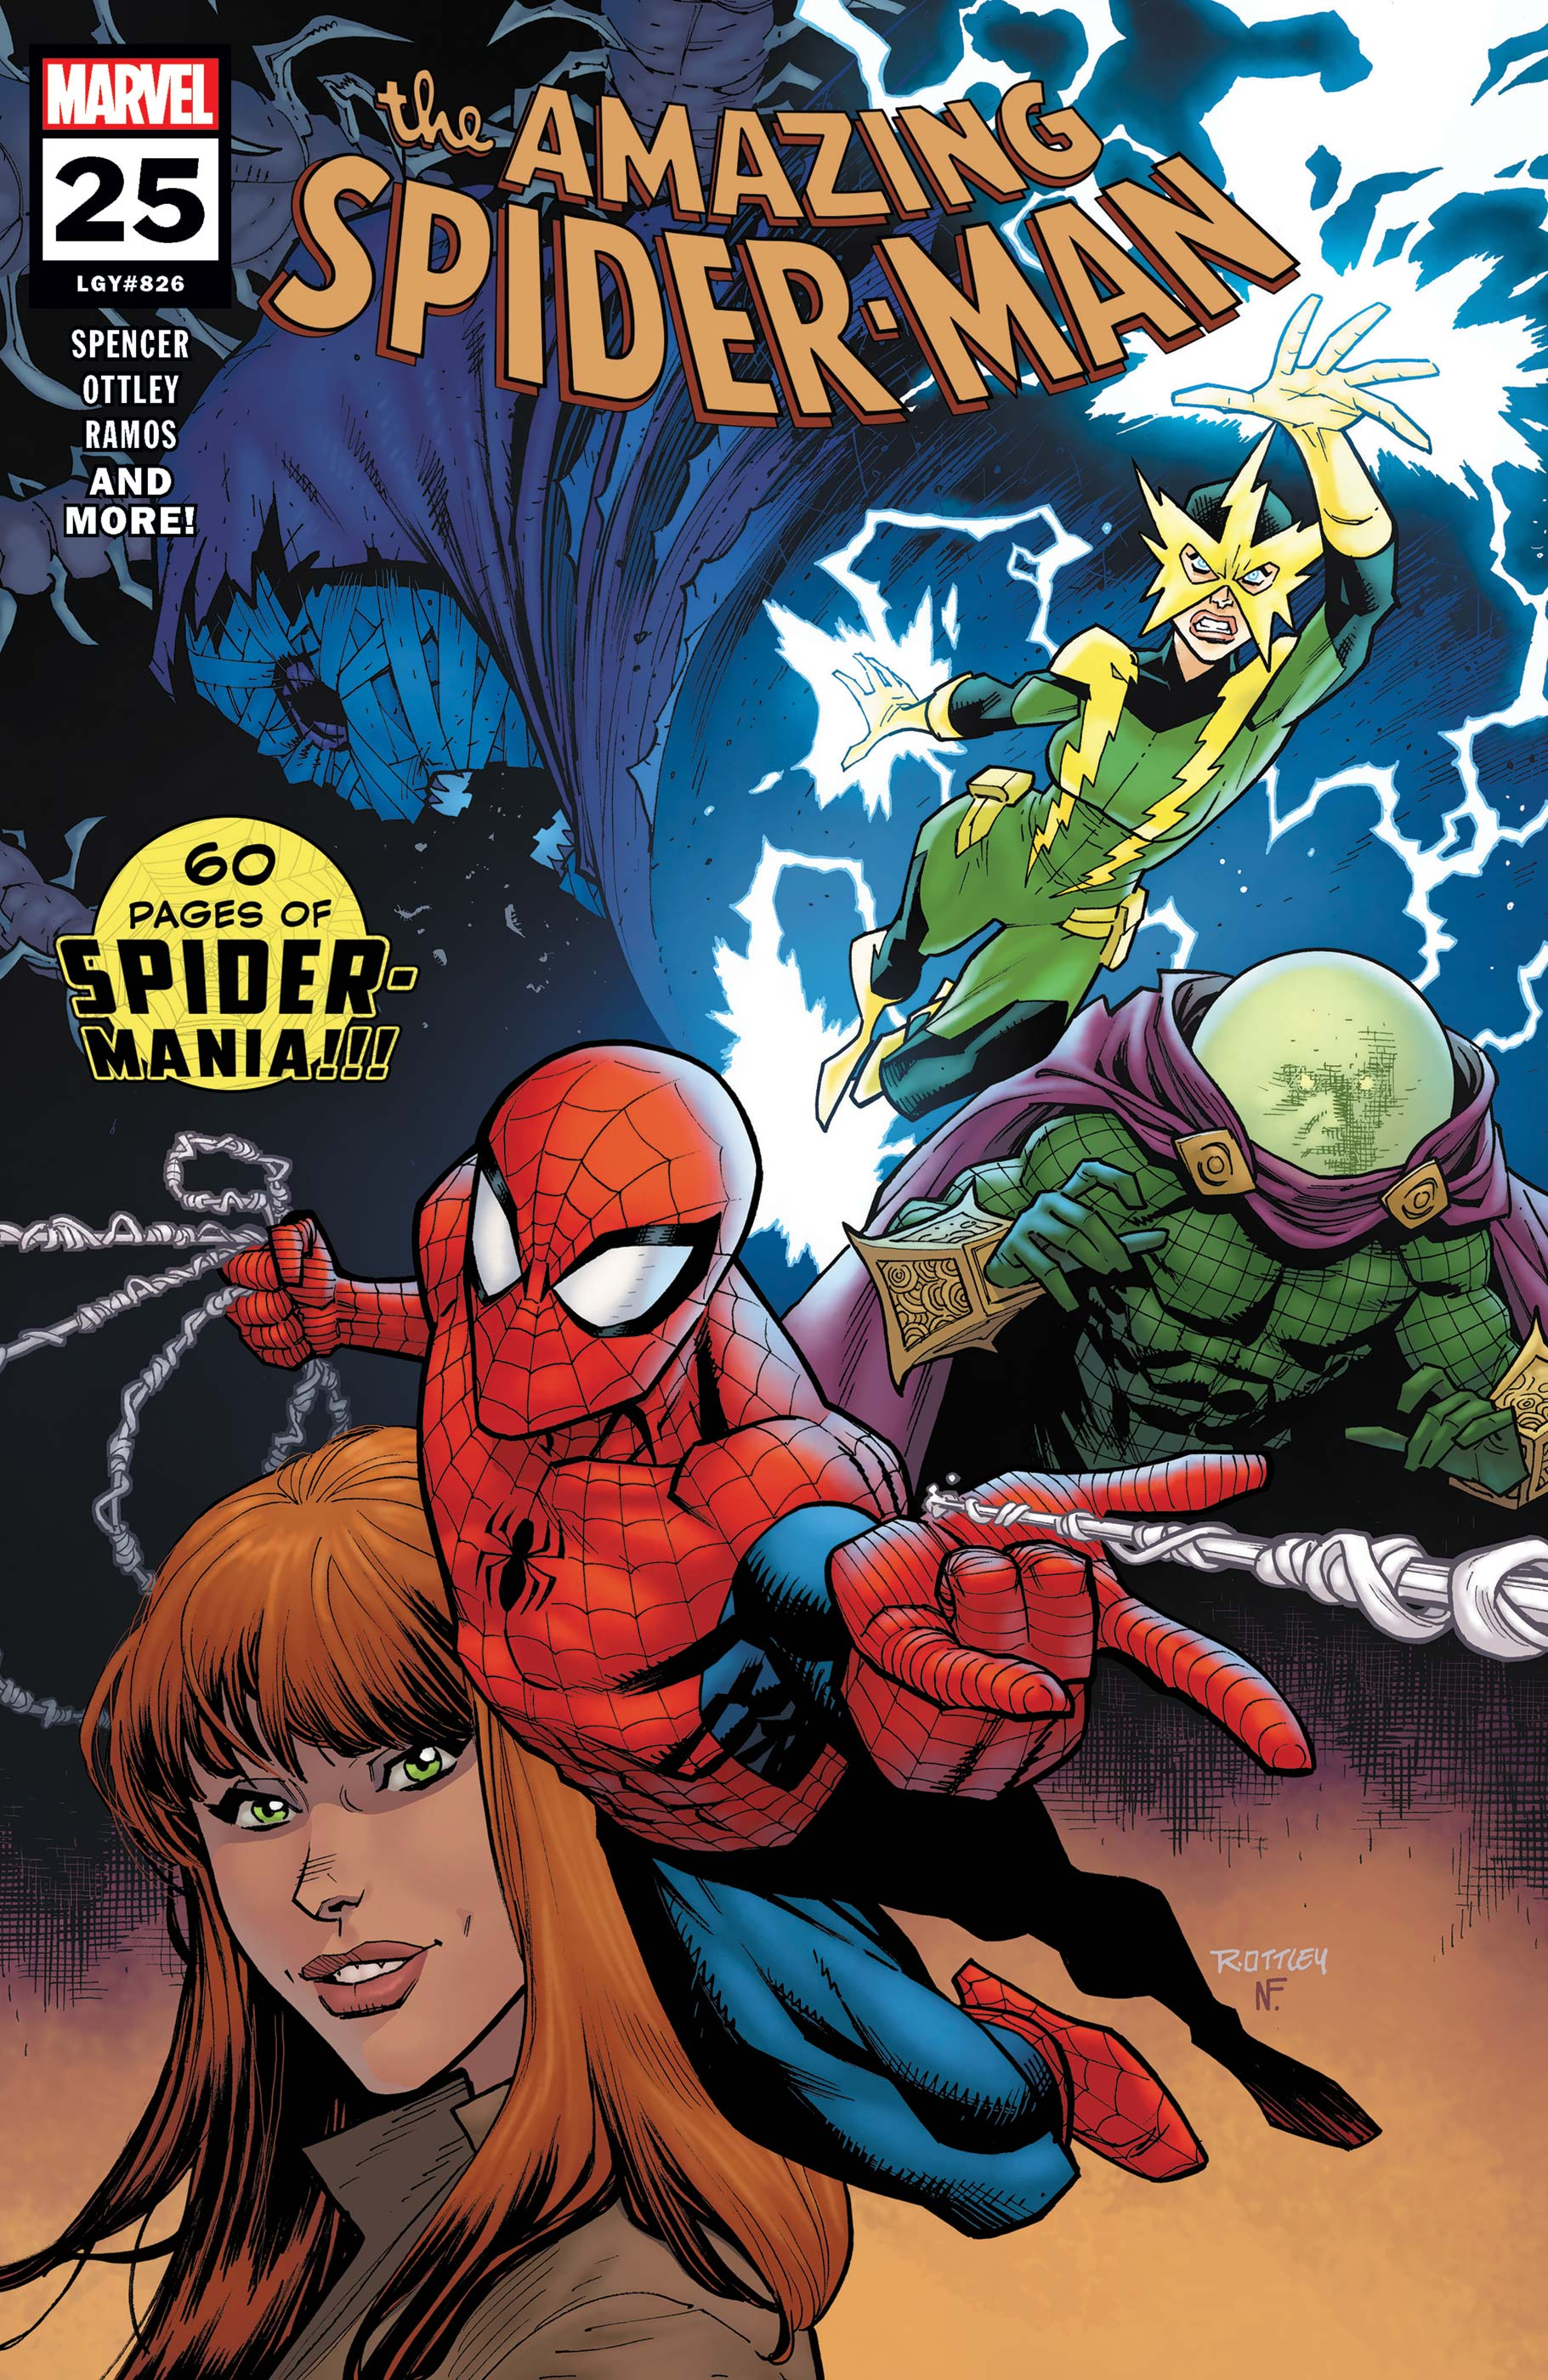 The Amazing Spider-Man (2018) #25